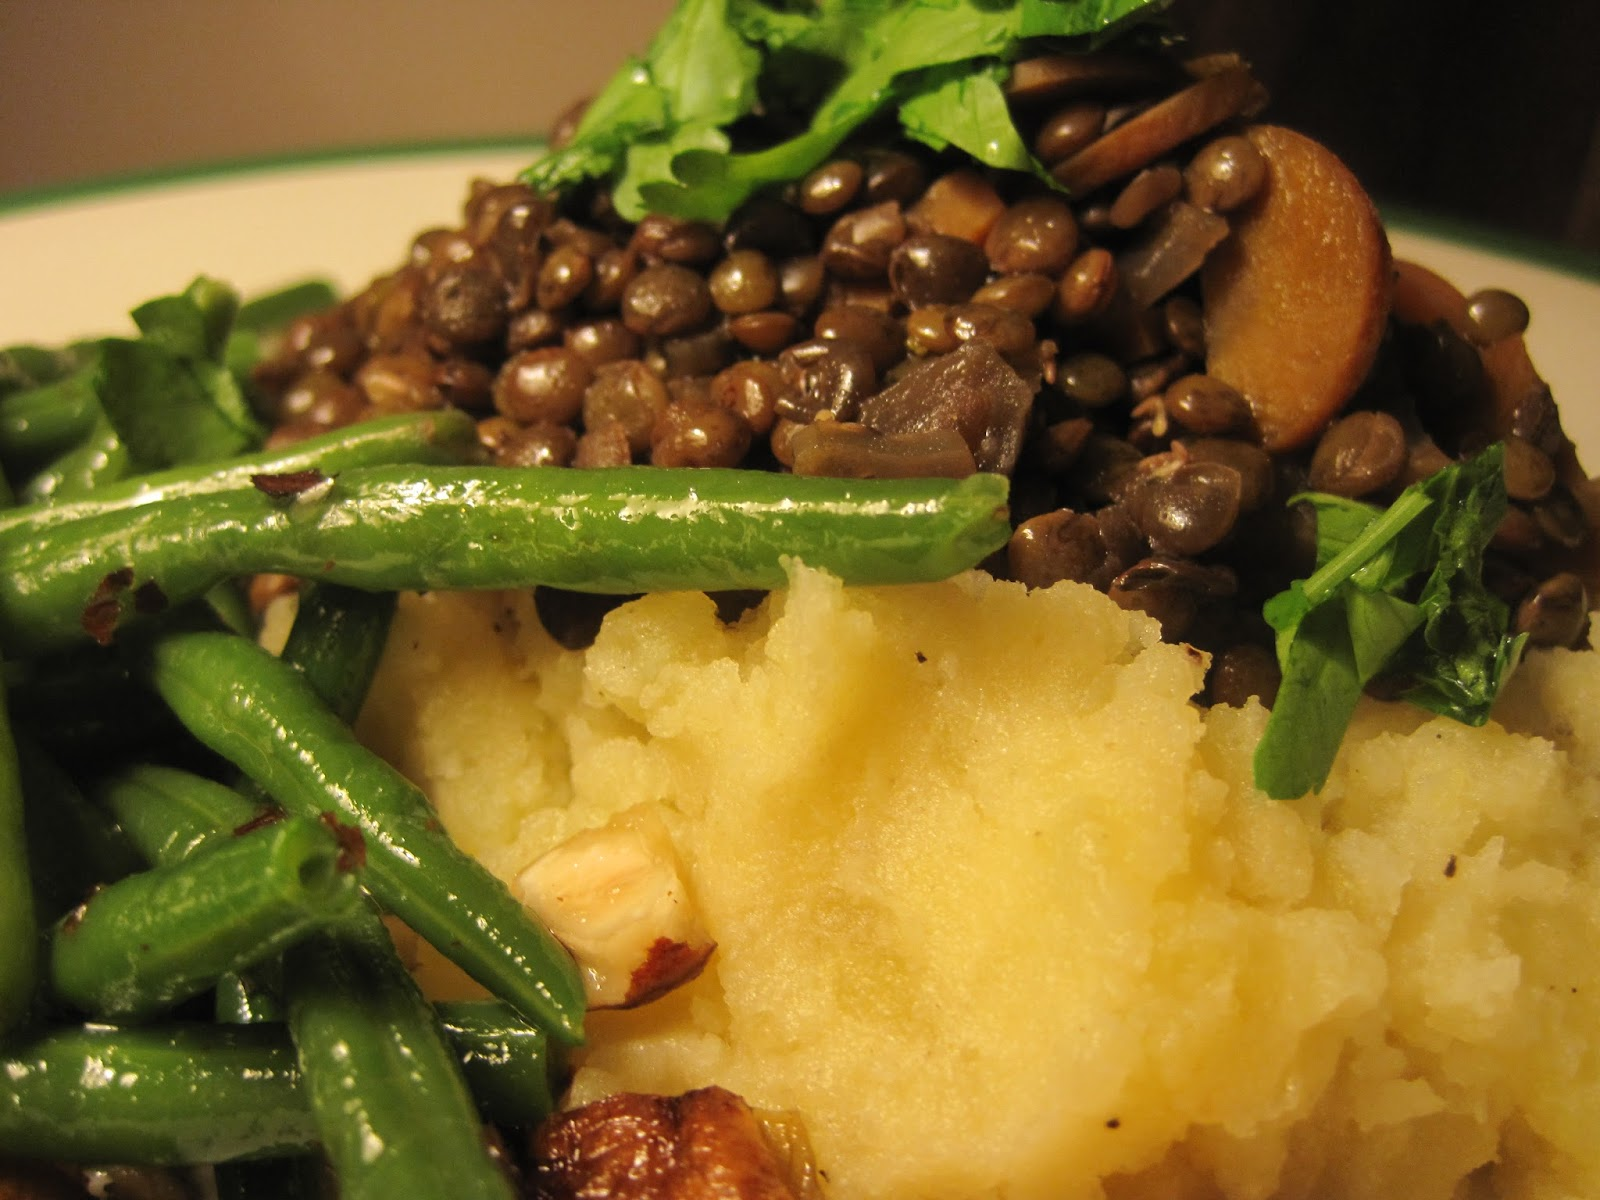 ... four - Braised Puy lentils and roasted shallots (Vegan mofo 2013 XII